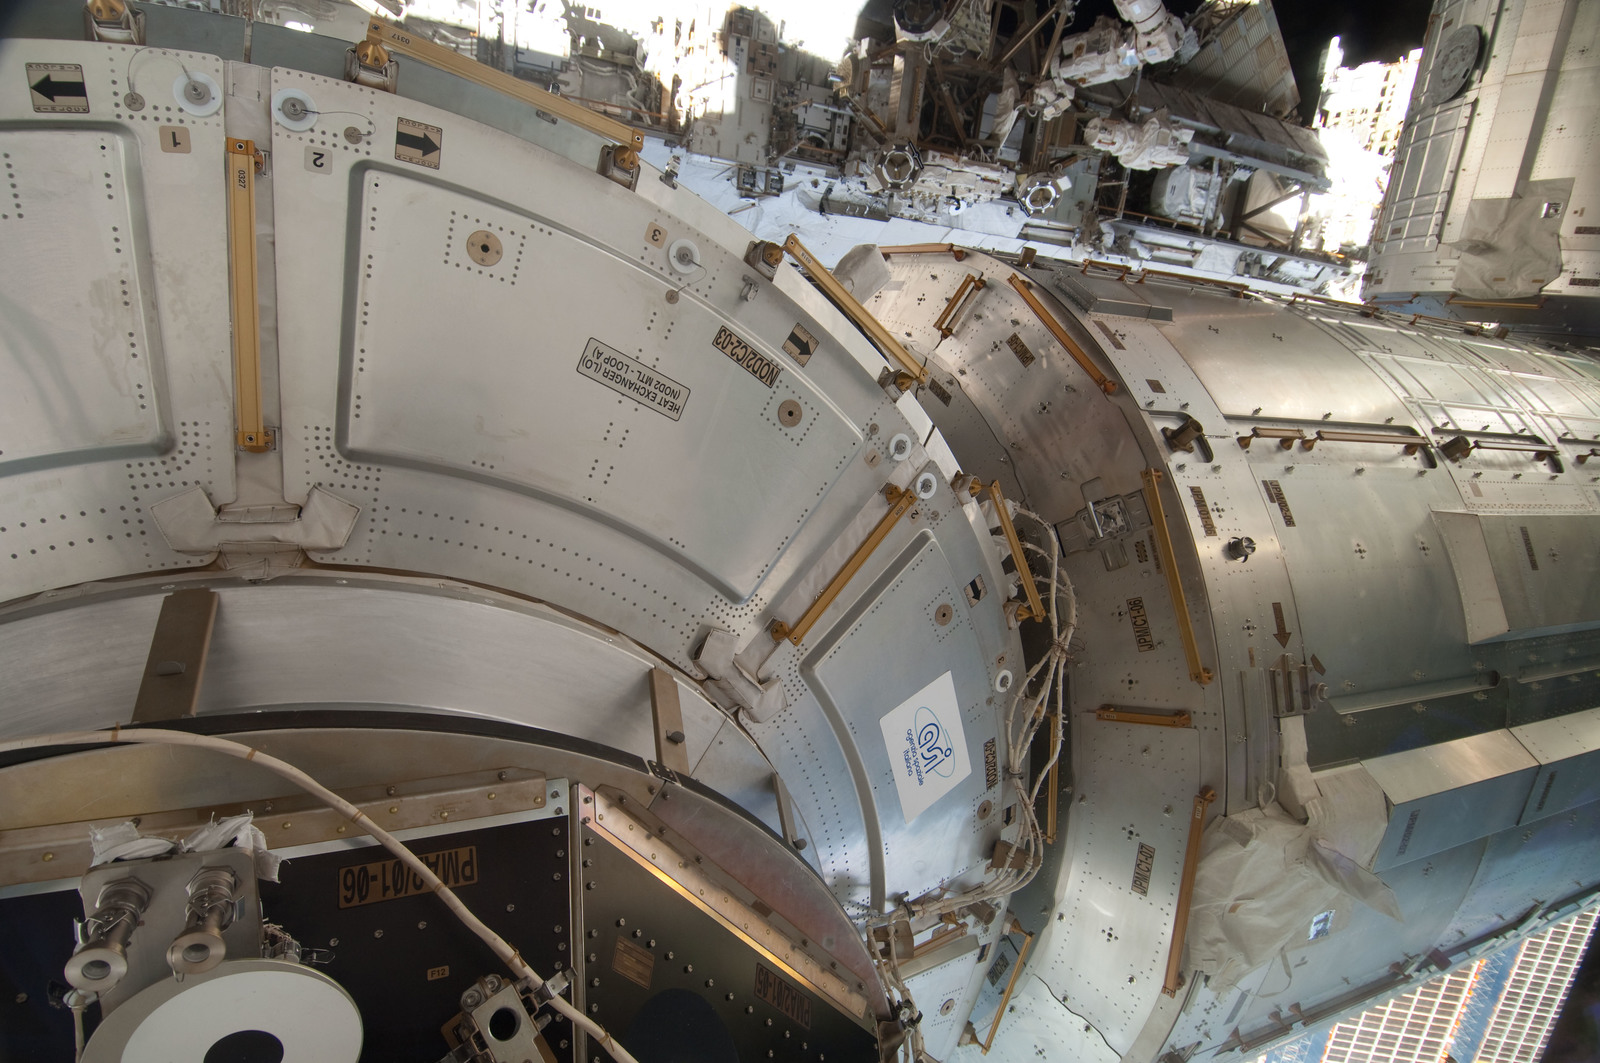 S127E006907 - STS-127 - Node 2 and JPM during EVA-1 on STS-127 / Expedition 20 Joint Operations